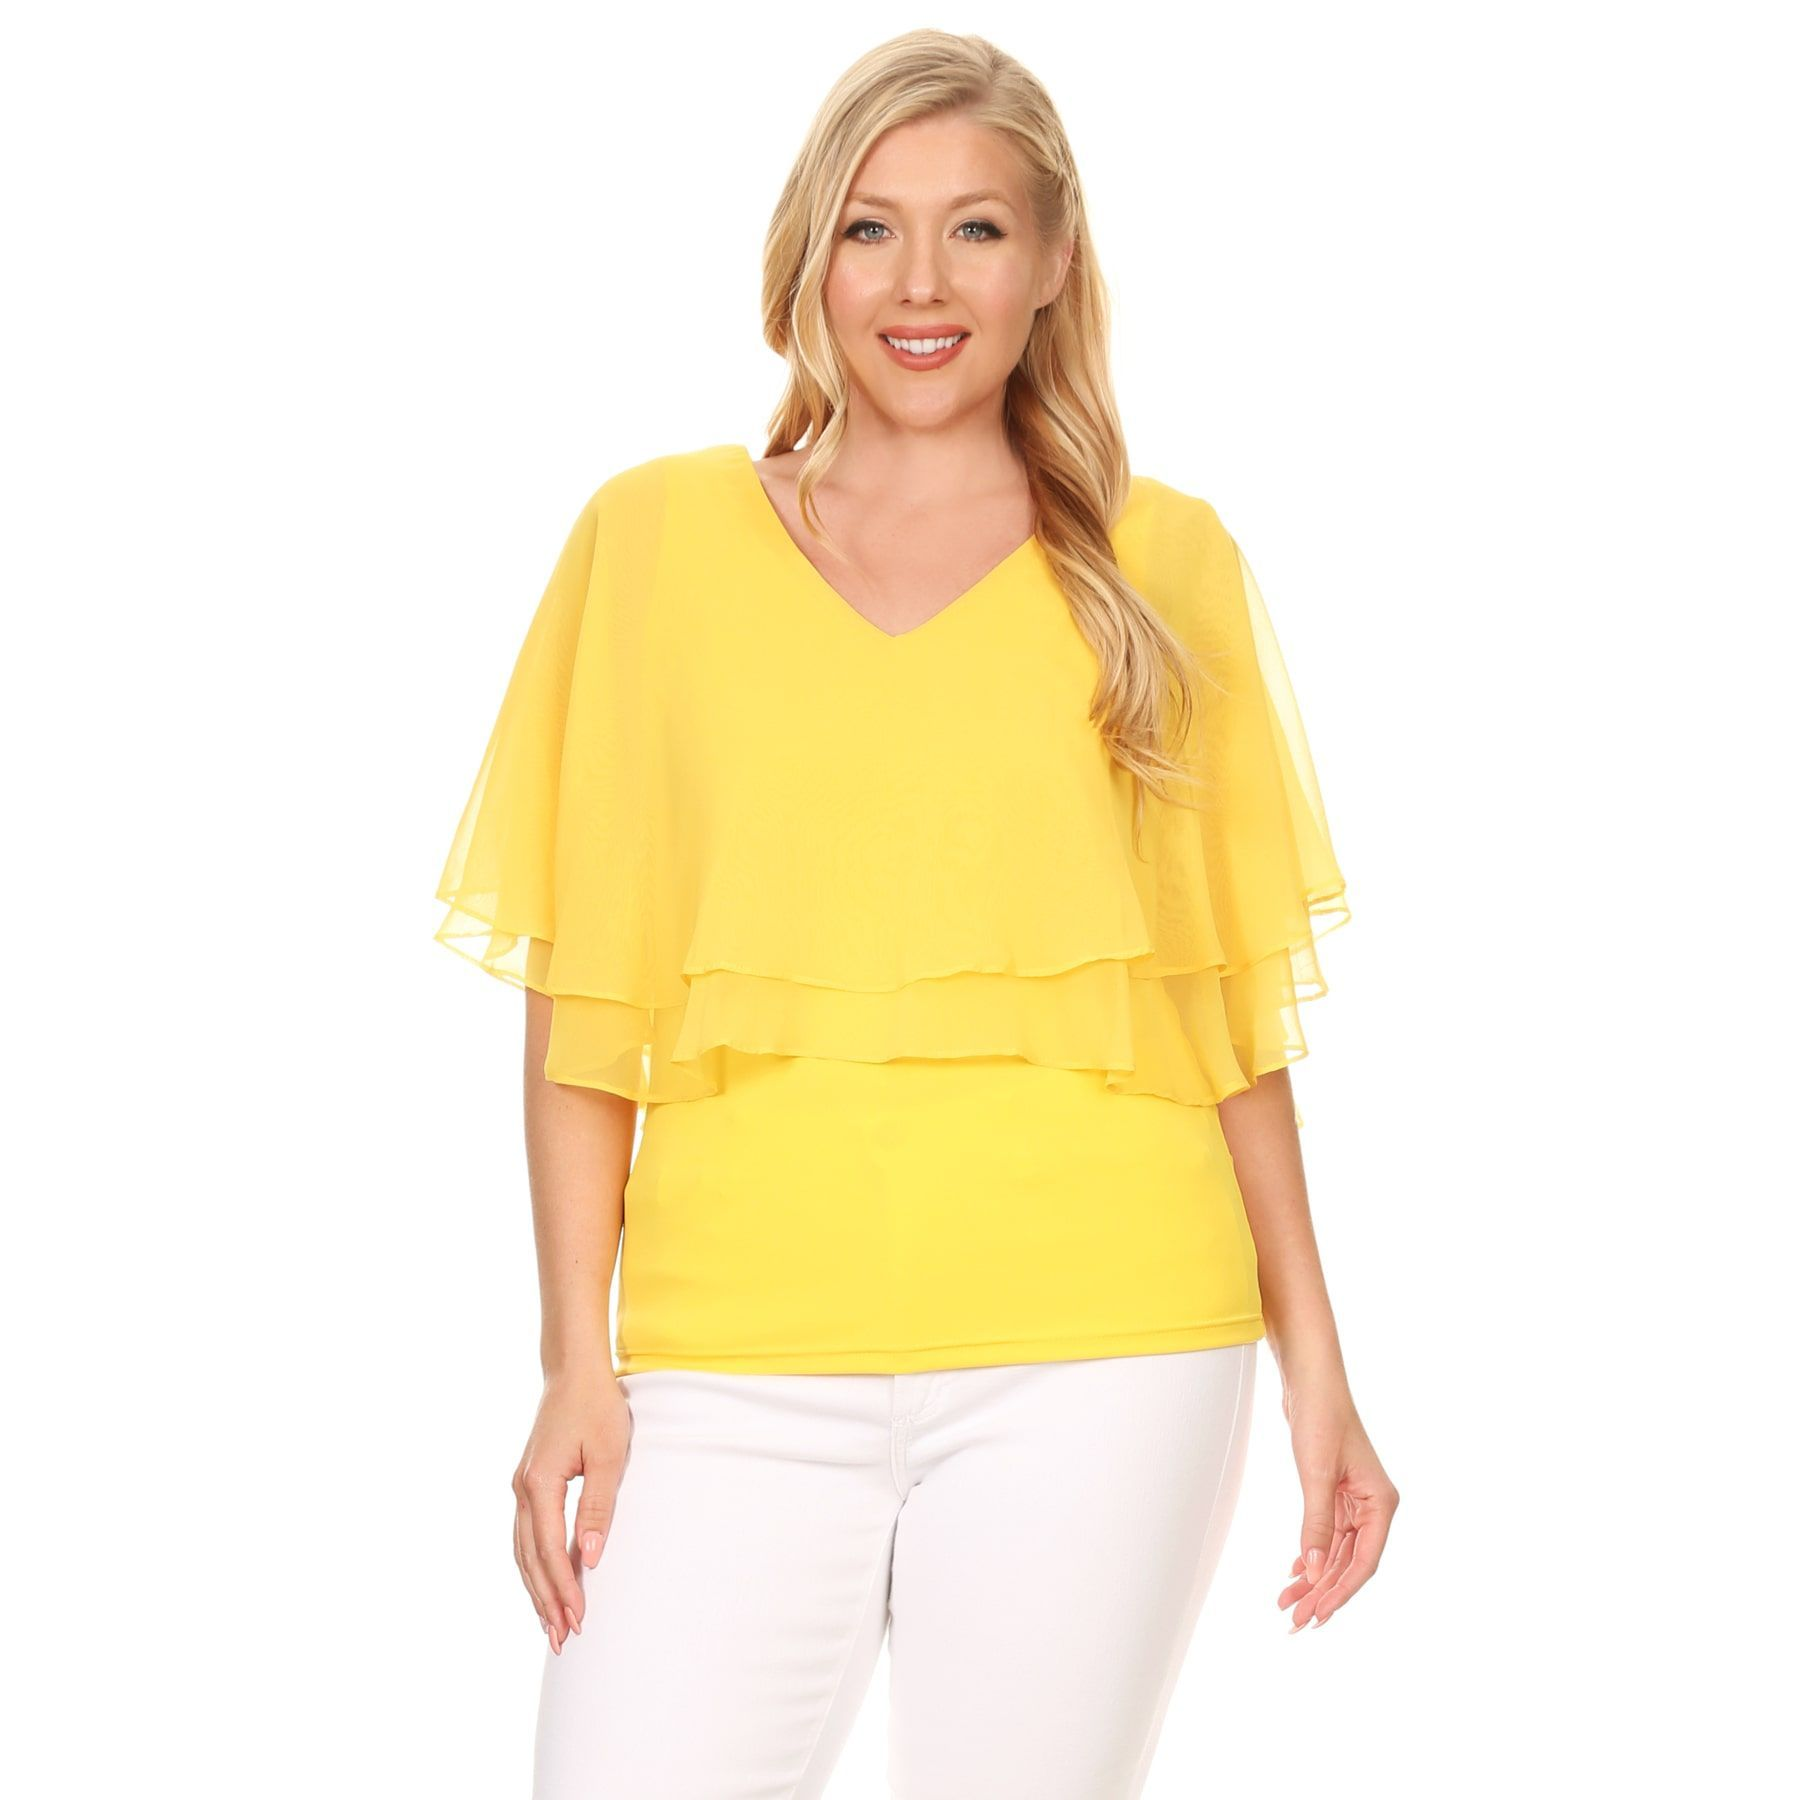 7e93ab3162eeb Hadari Xehar Women s Plus Size Double Layer Solid Blouse Top (Yellow-3XL)